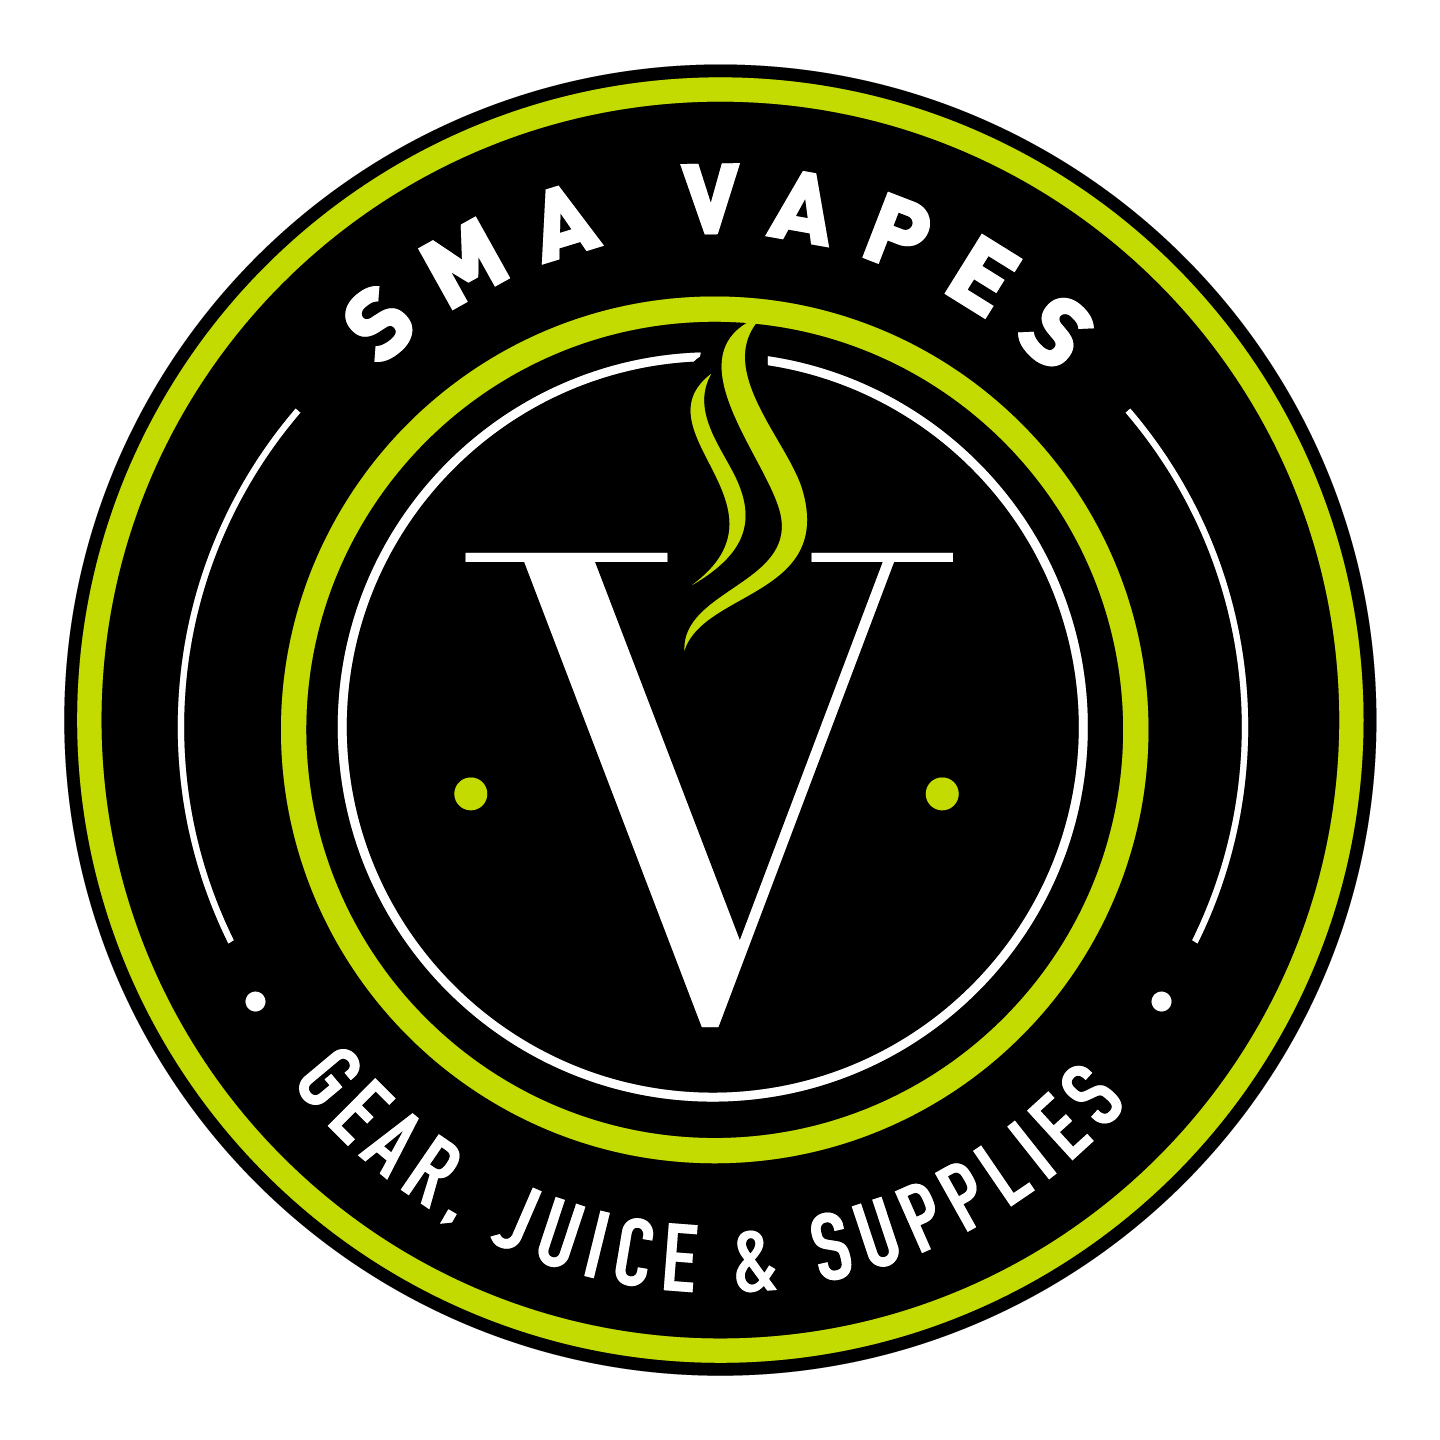 E-cig Gear, Juice, & Supplies